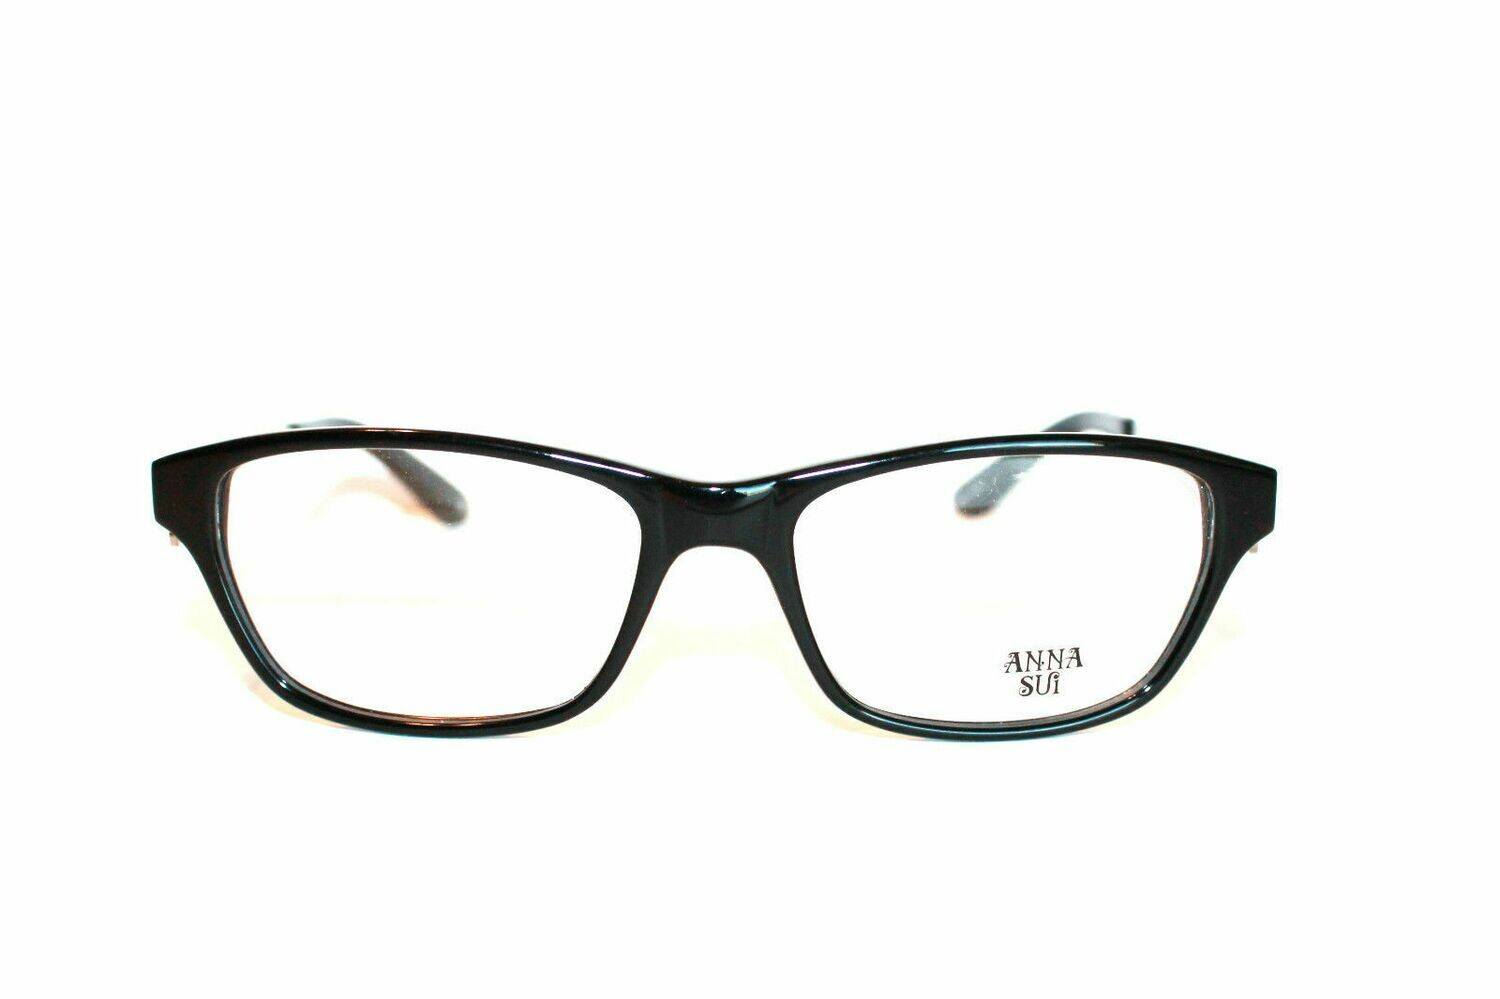 Anna Sui AS537 in Black Glasses Eyewear New and Authentic RX-able 53-16-140